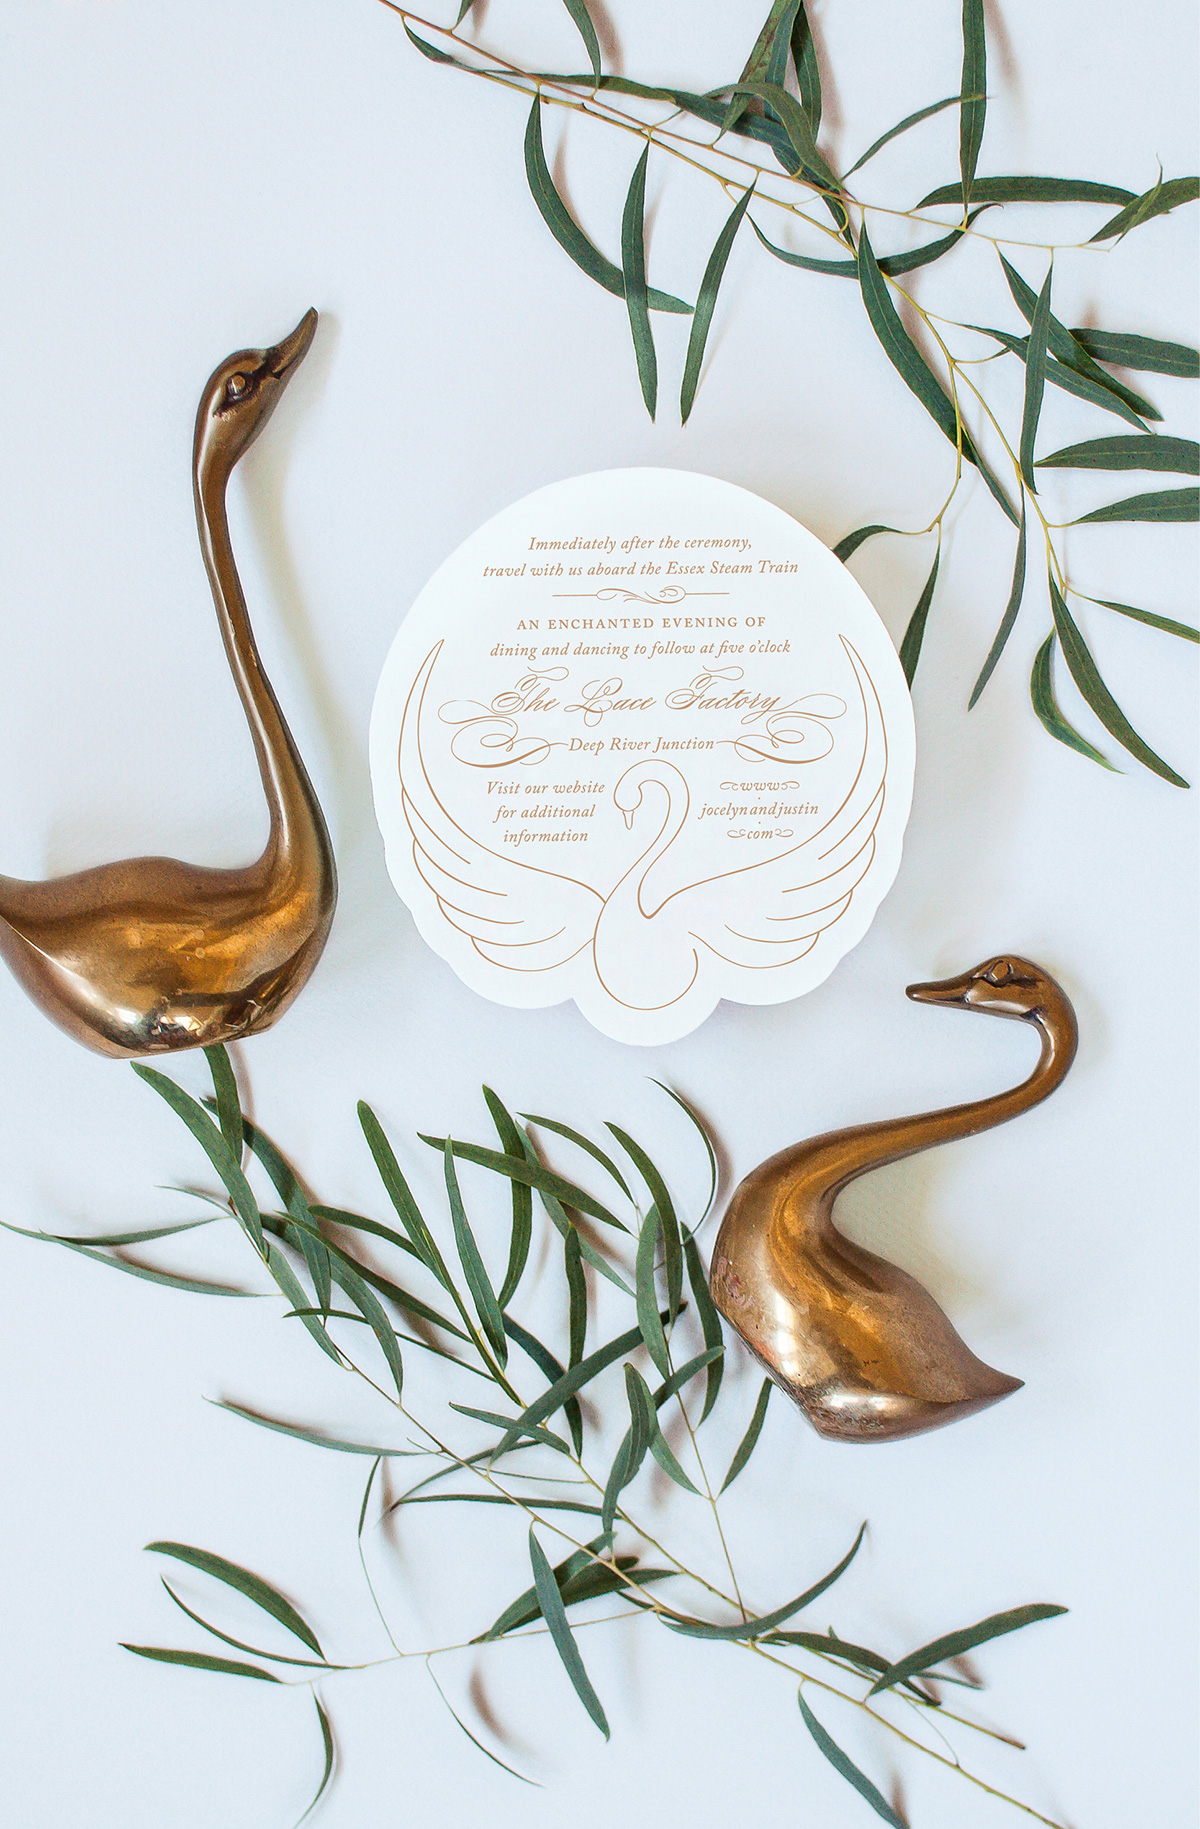 Swan die cut wedding details card